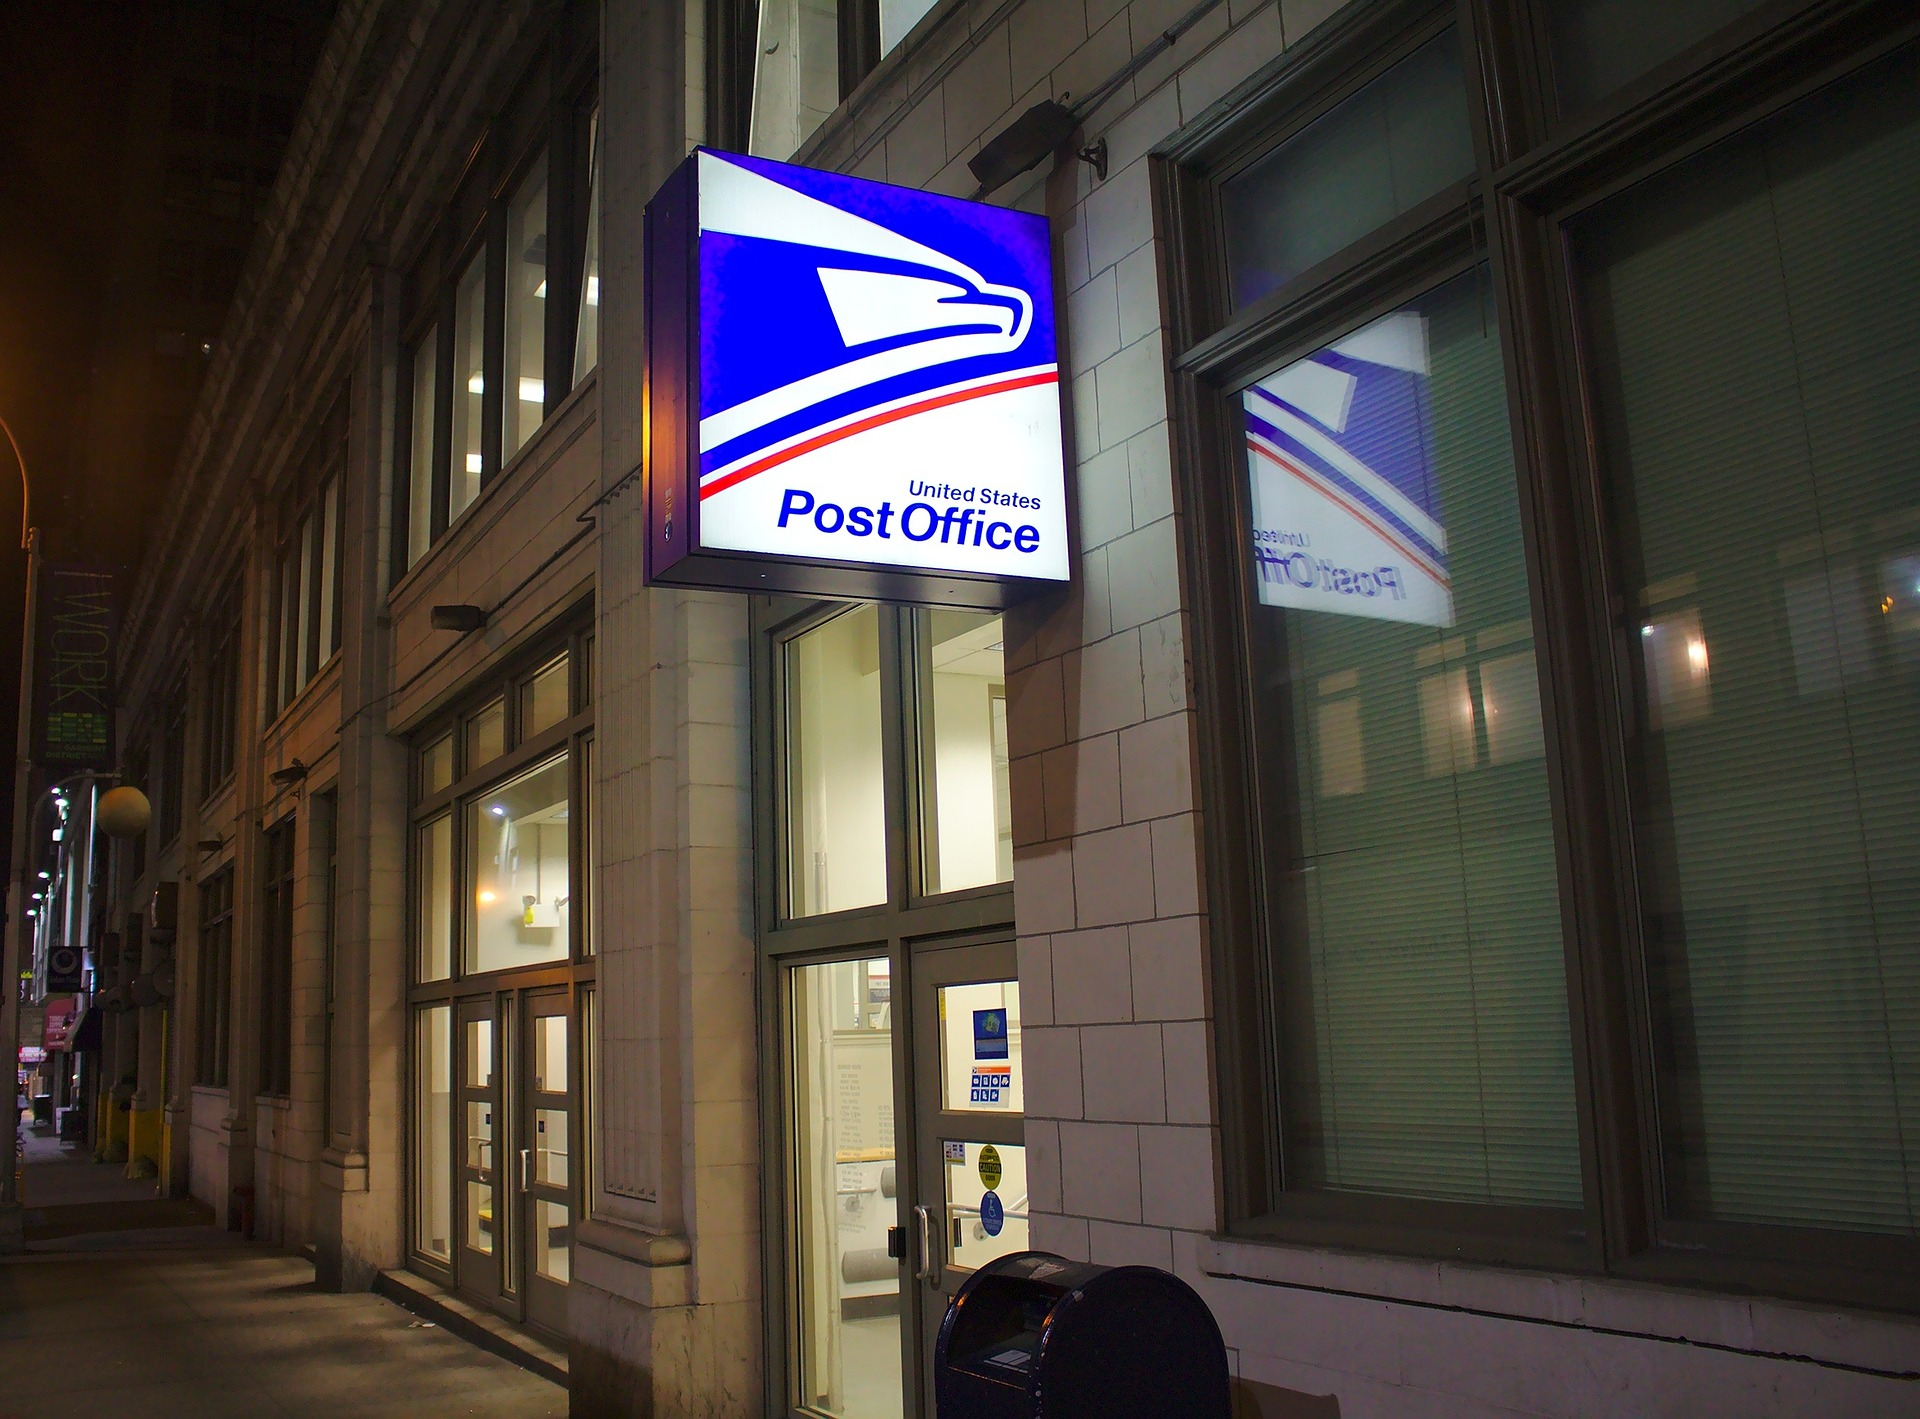 The u s postal service and financial sustainability research roundup journalist 39 s resource - Post office us post office ...